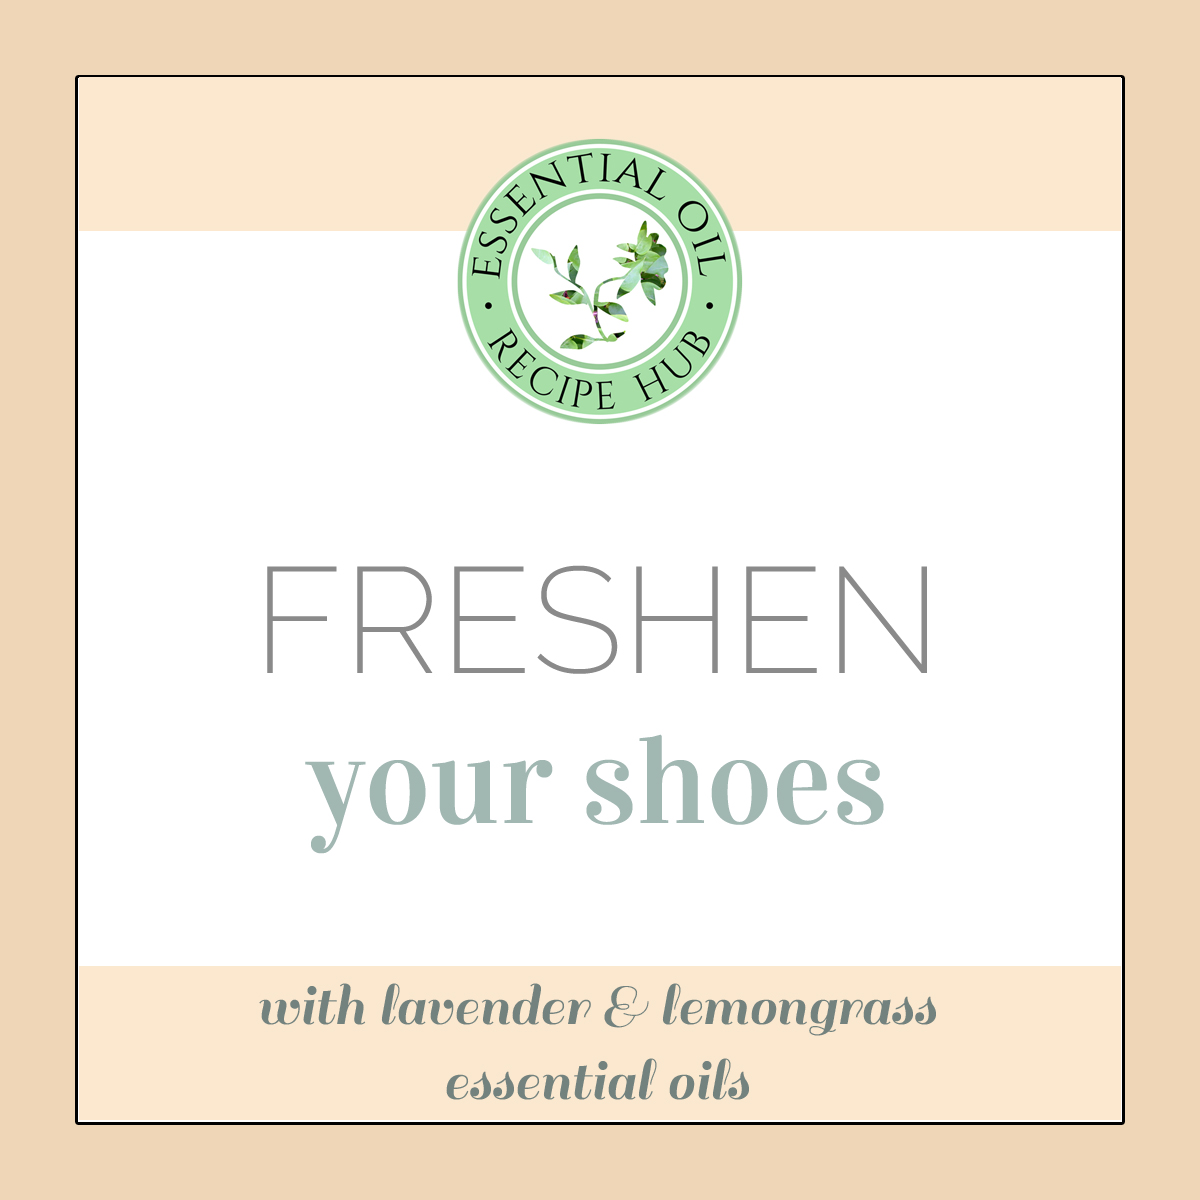 freshen your shoes